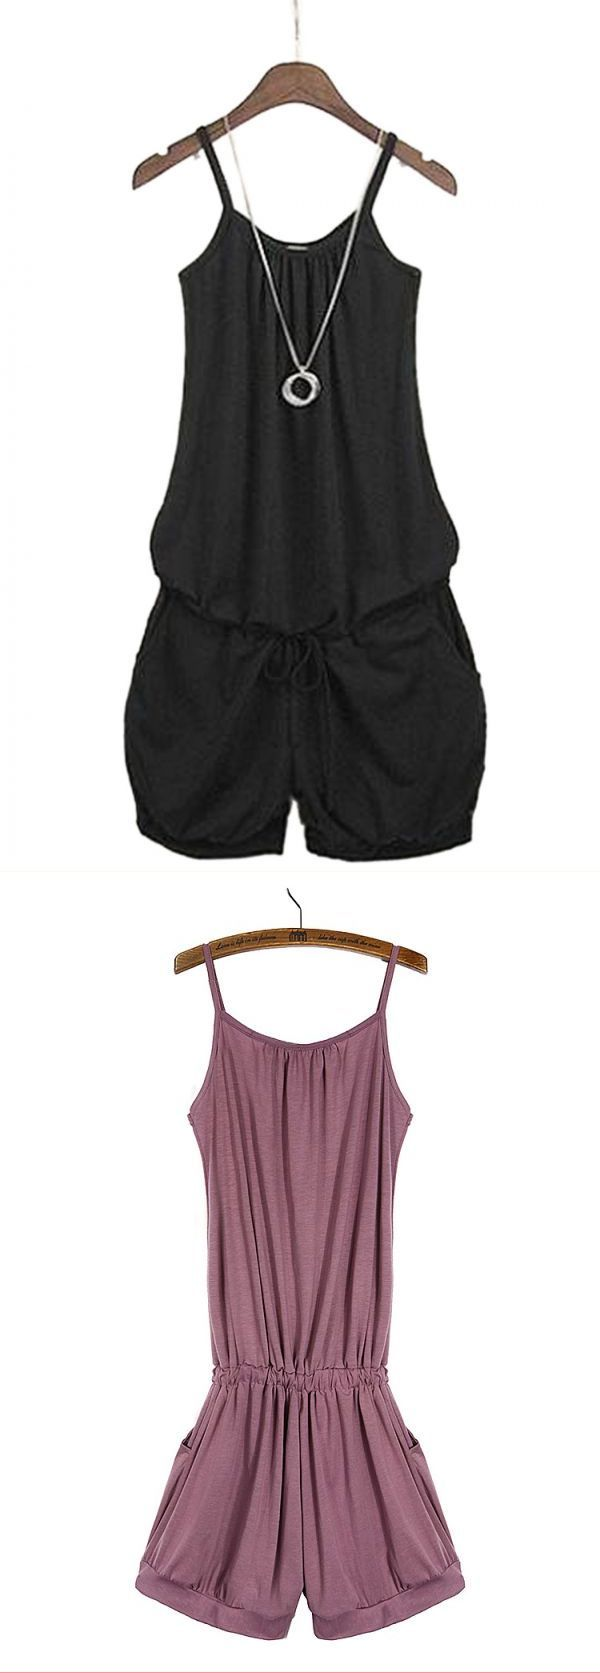 Women casual all-match sleeveless romper strap short jumpsuit jumpsuits and playsuits cheap #jumpsuits #and #playsuits #online #india #jumpsuits #y #playsuits #womens #jumpsuits #and #playsuits #uk